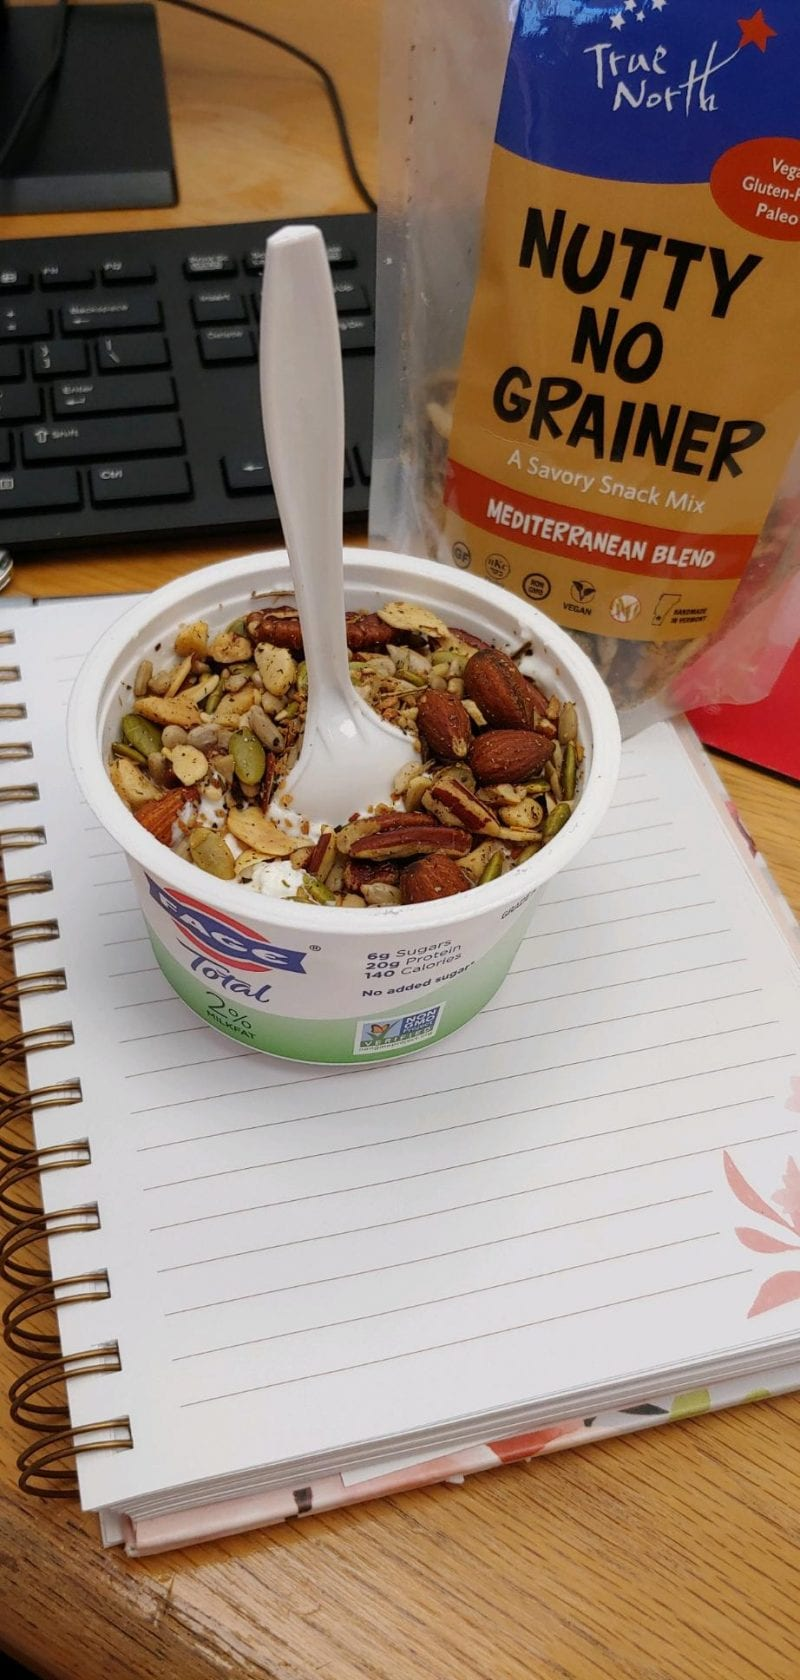 Nutty No Grainer on yogurt for lunch